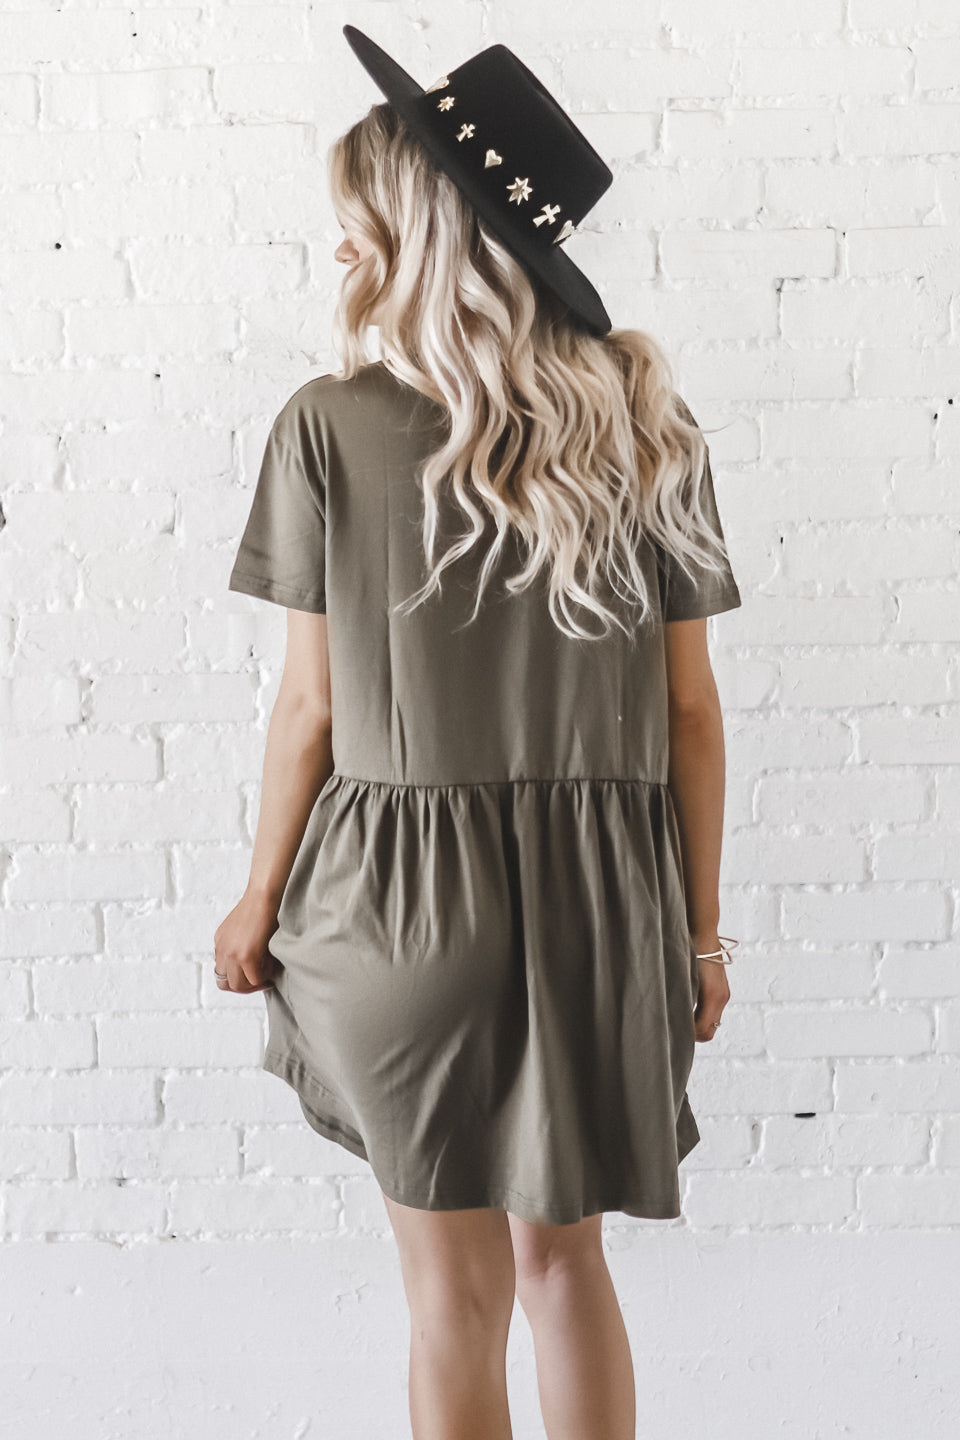 Ditzy Debby High Neck Olive Dress